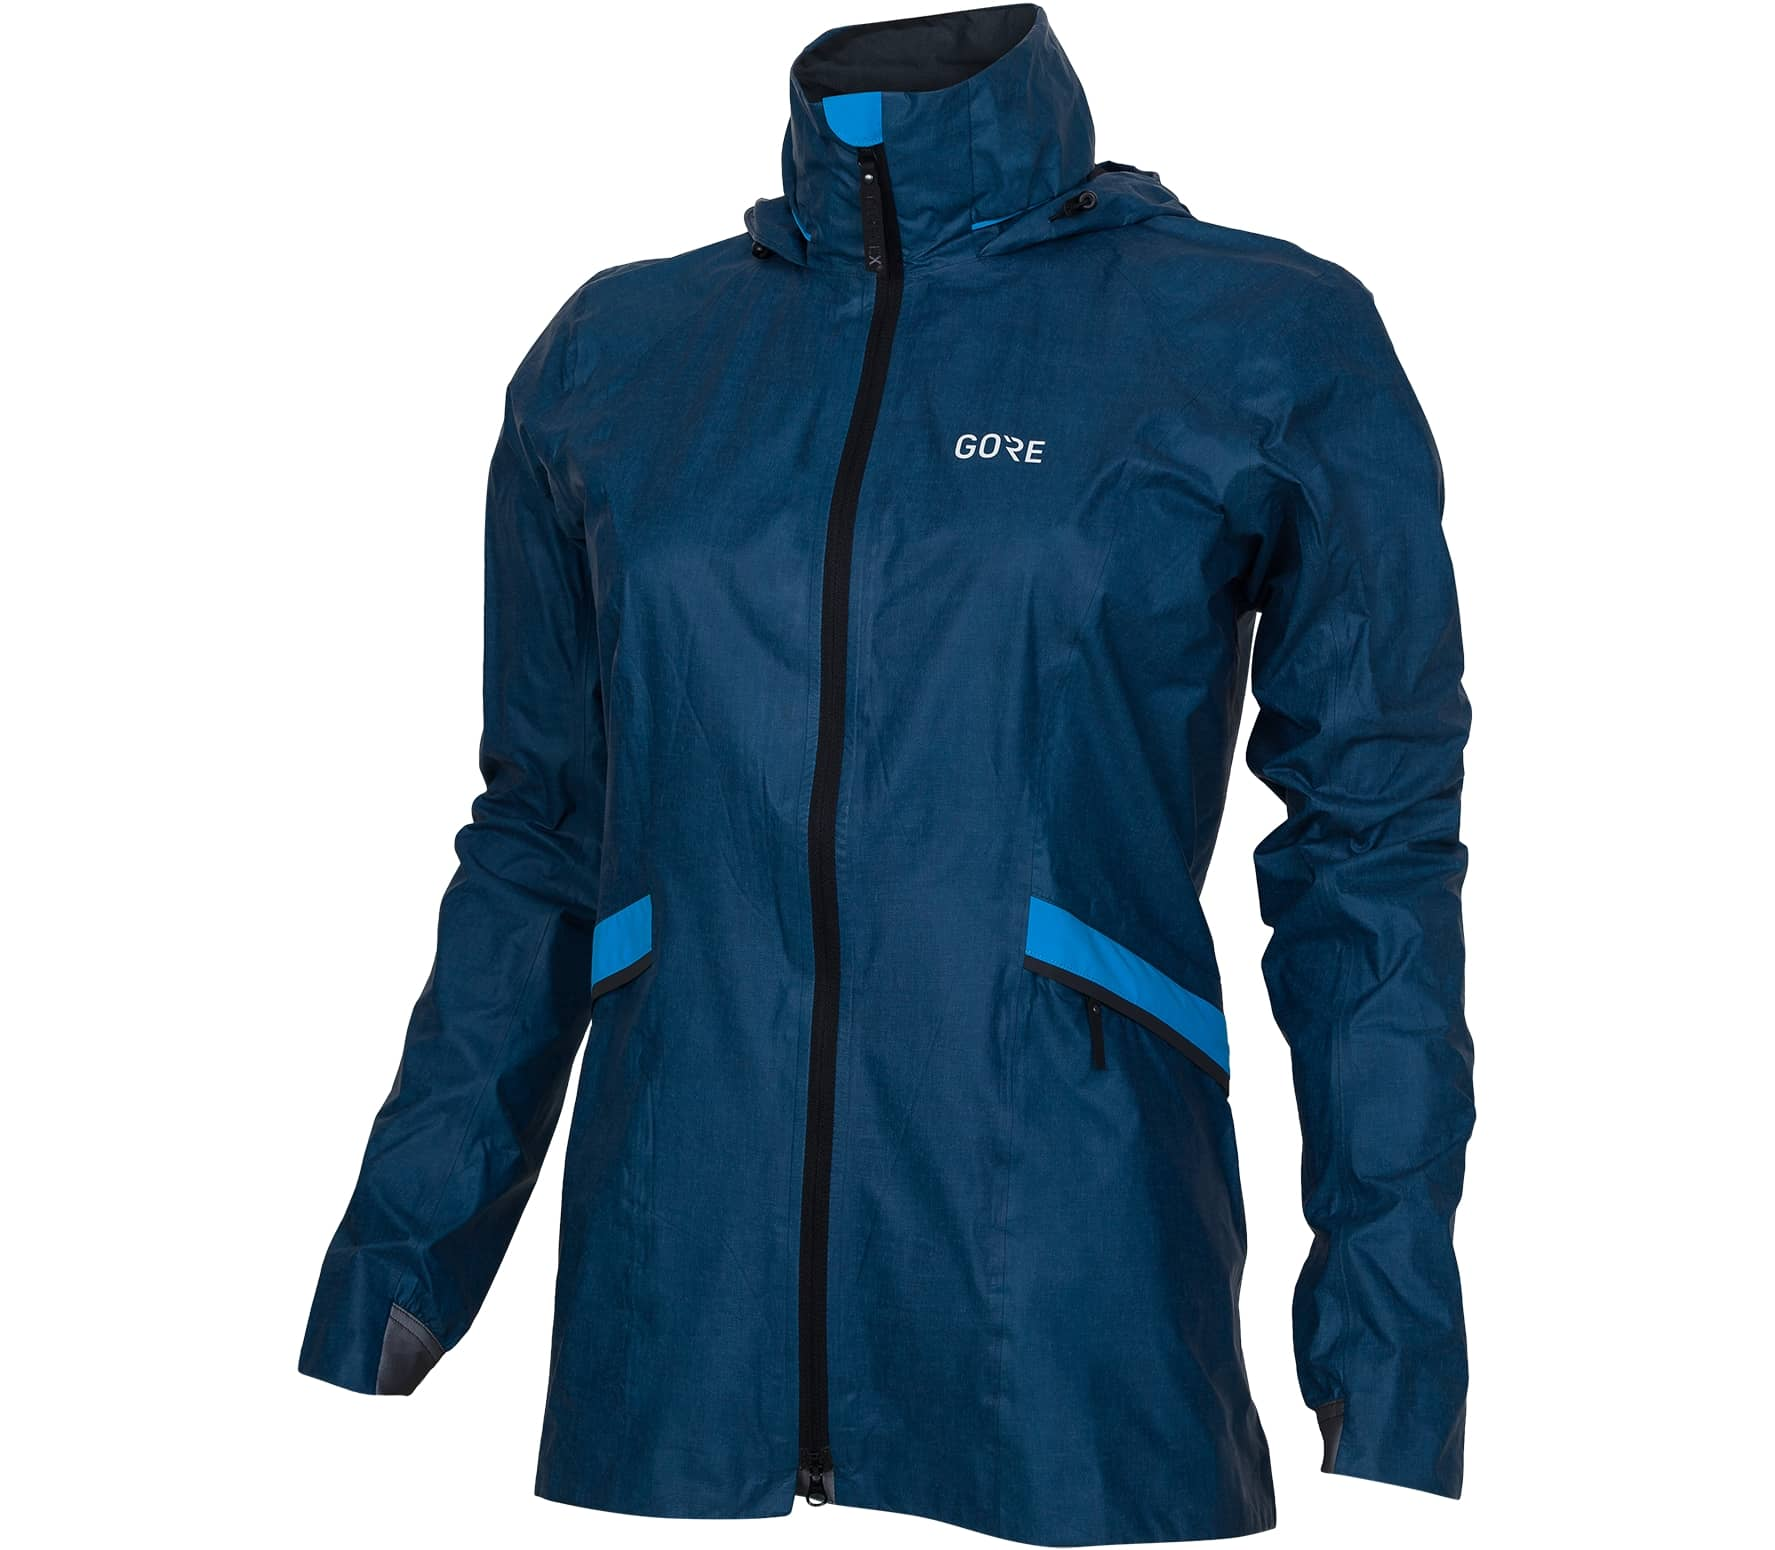 GORE® Wear - R5 Goretex Shakedry women's running jacket (blue) - XS thumbnail